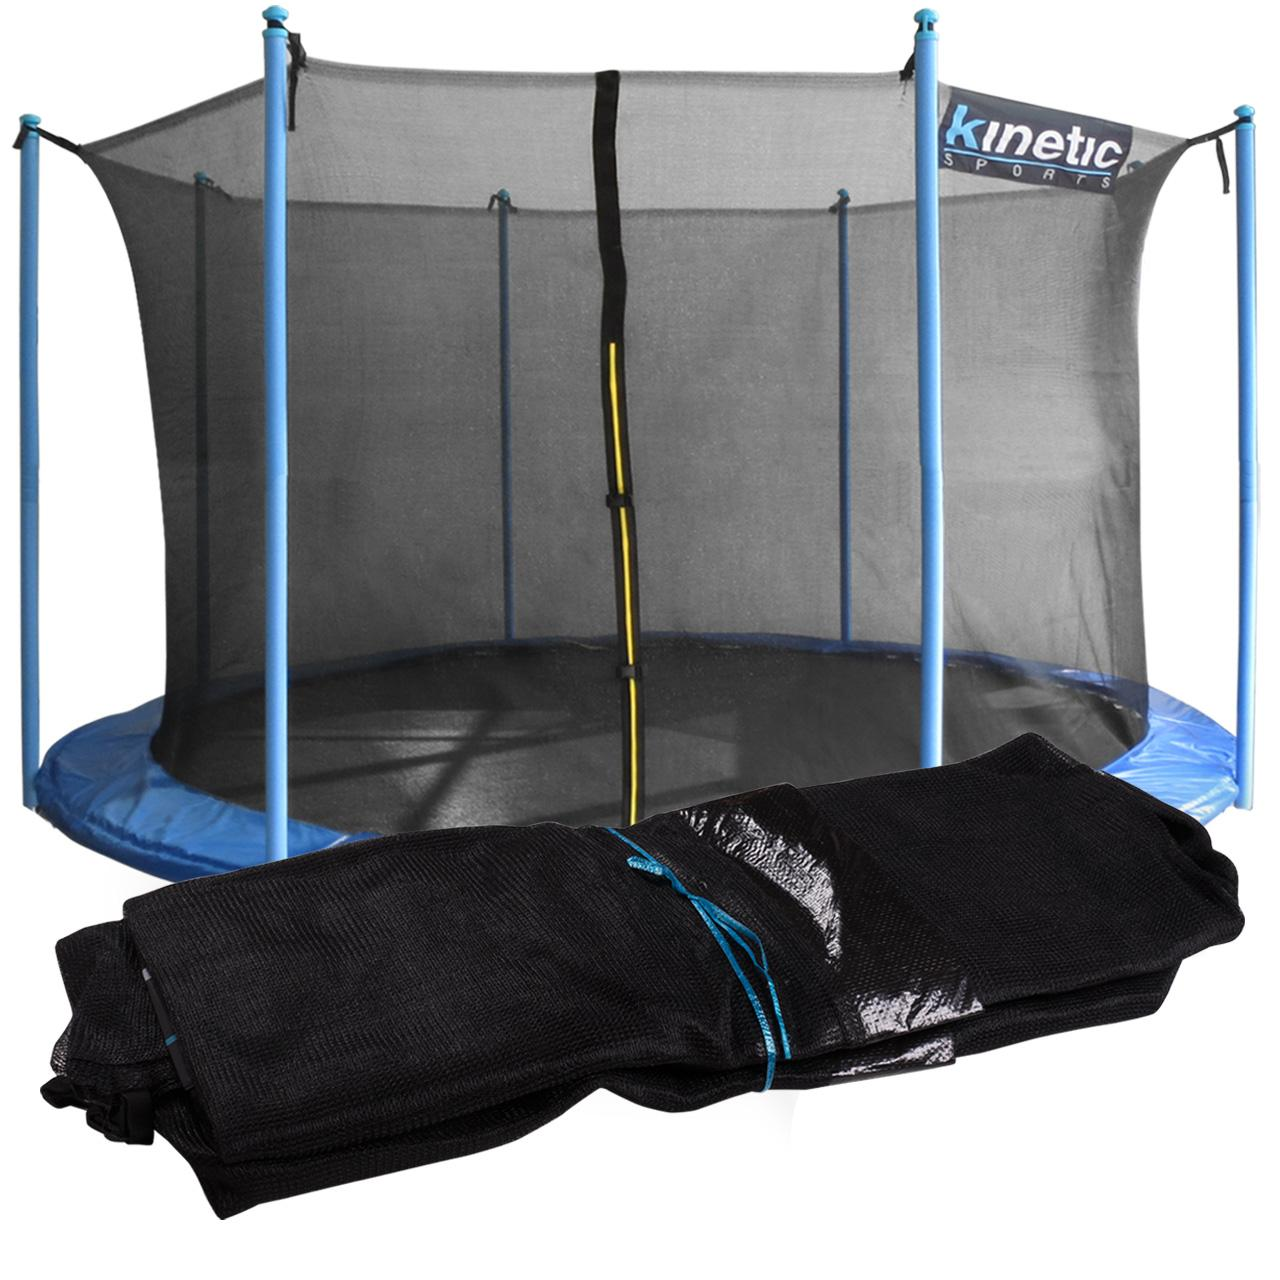 kinetic sports universal sicherheitsnetz f r trampoline. Black Bedroom Furniture Sets. Home Design Ideas